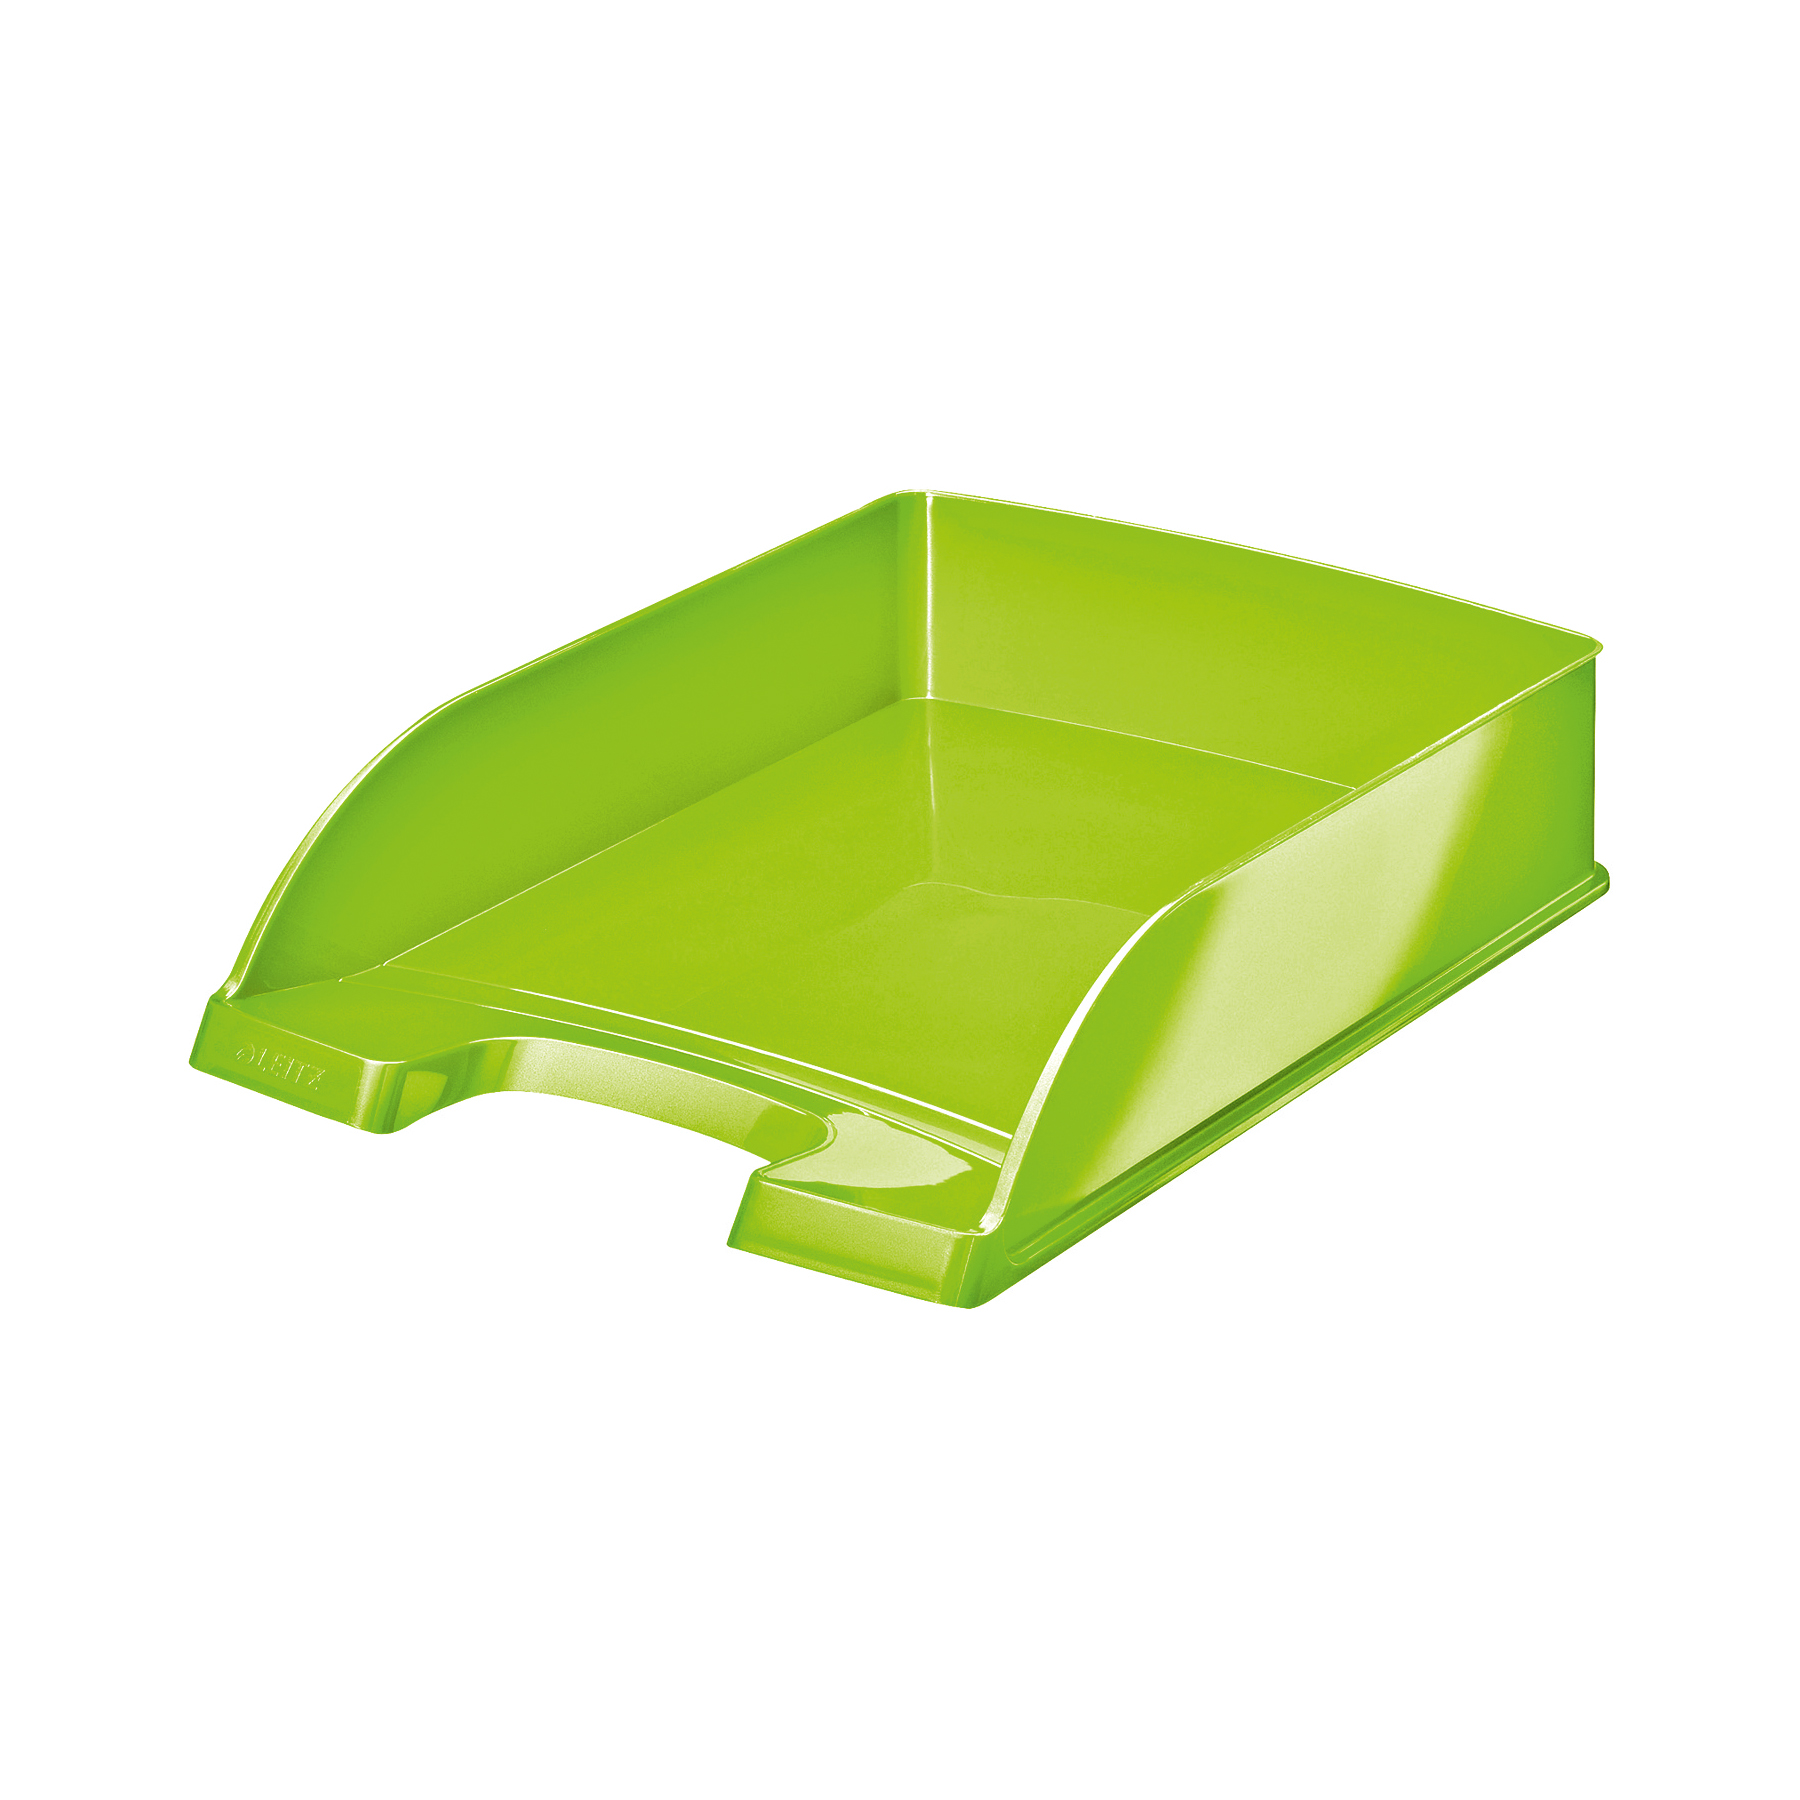 Letter Trays Leitz WOW Letter Tray Stackable Glossy W245xD380xH70mm Green Ref 52263054